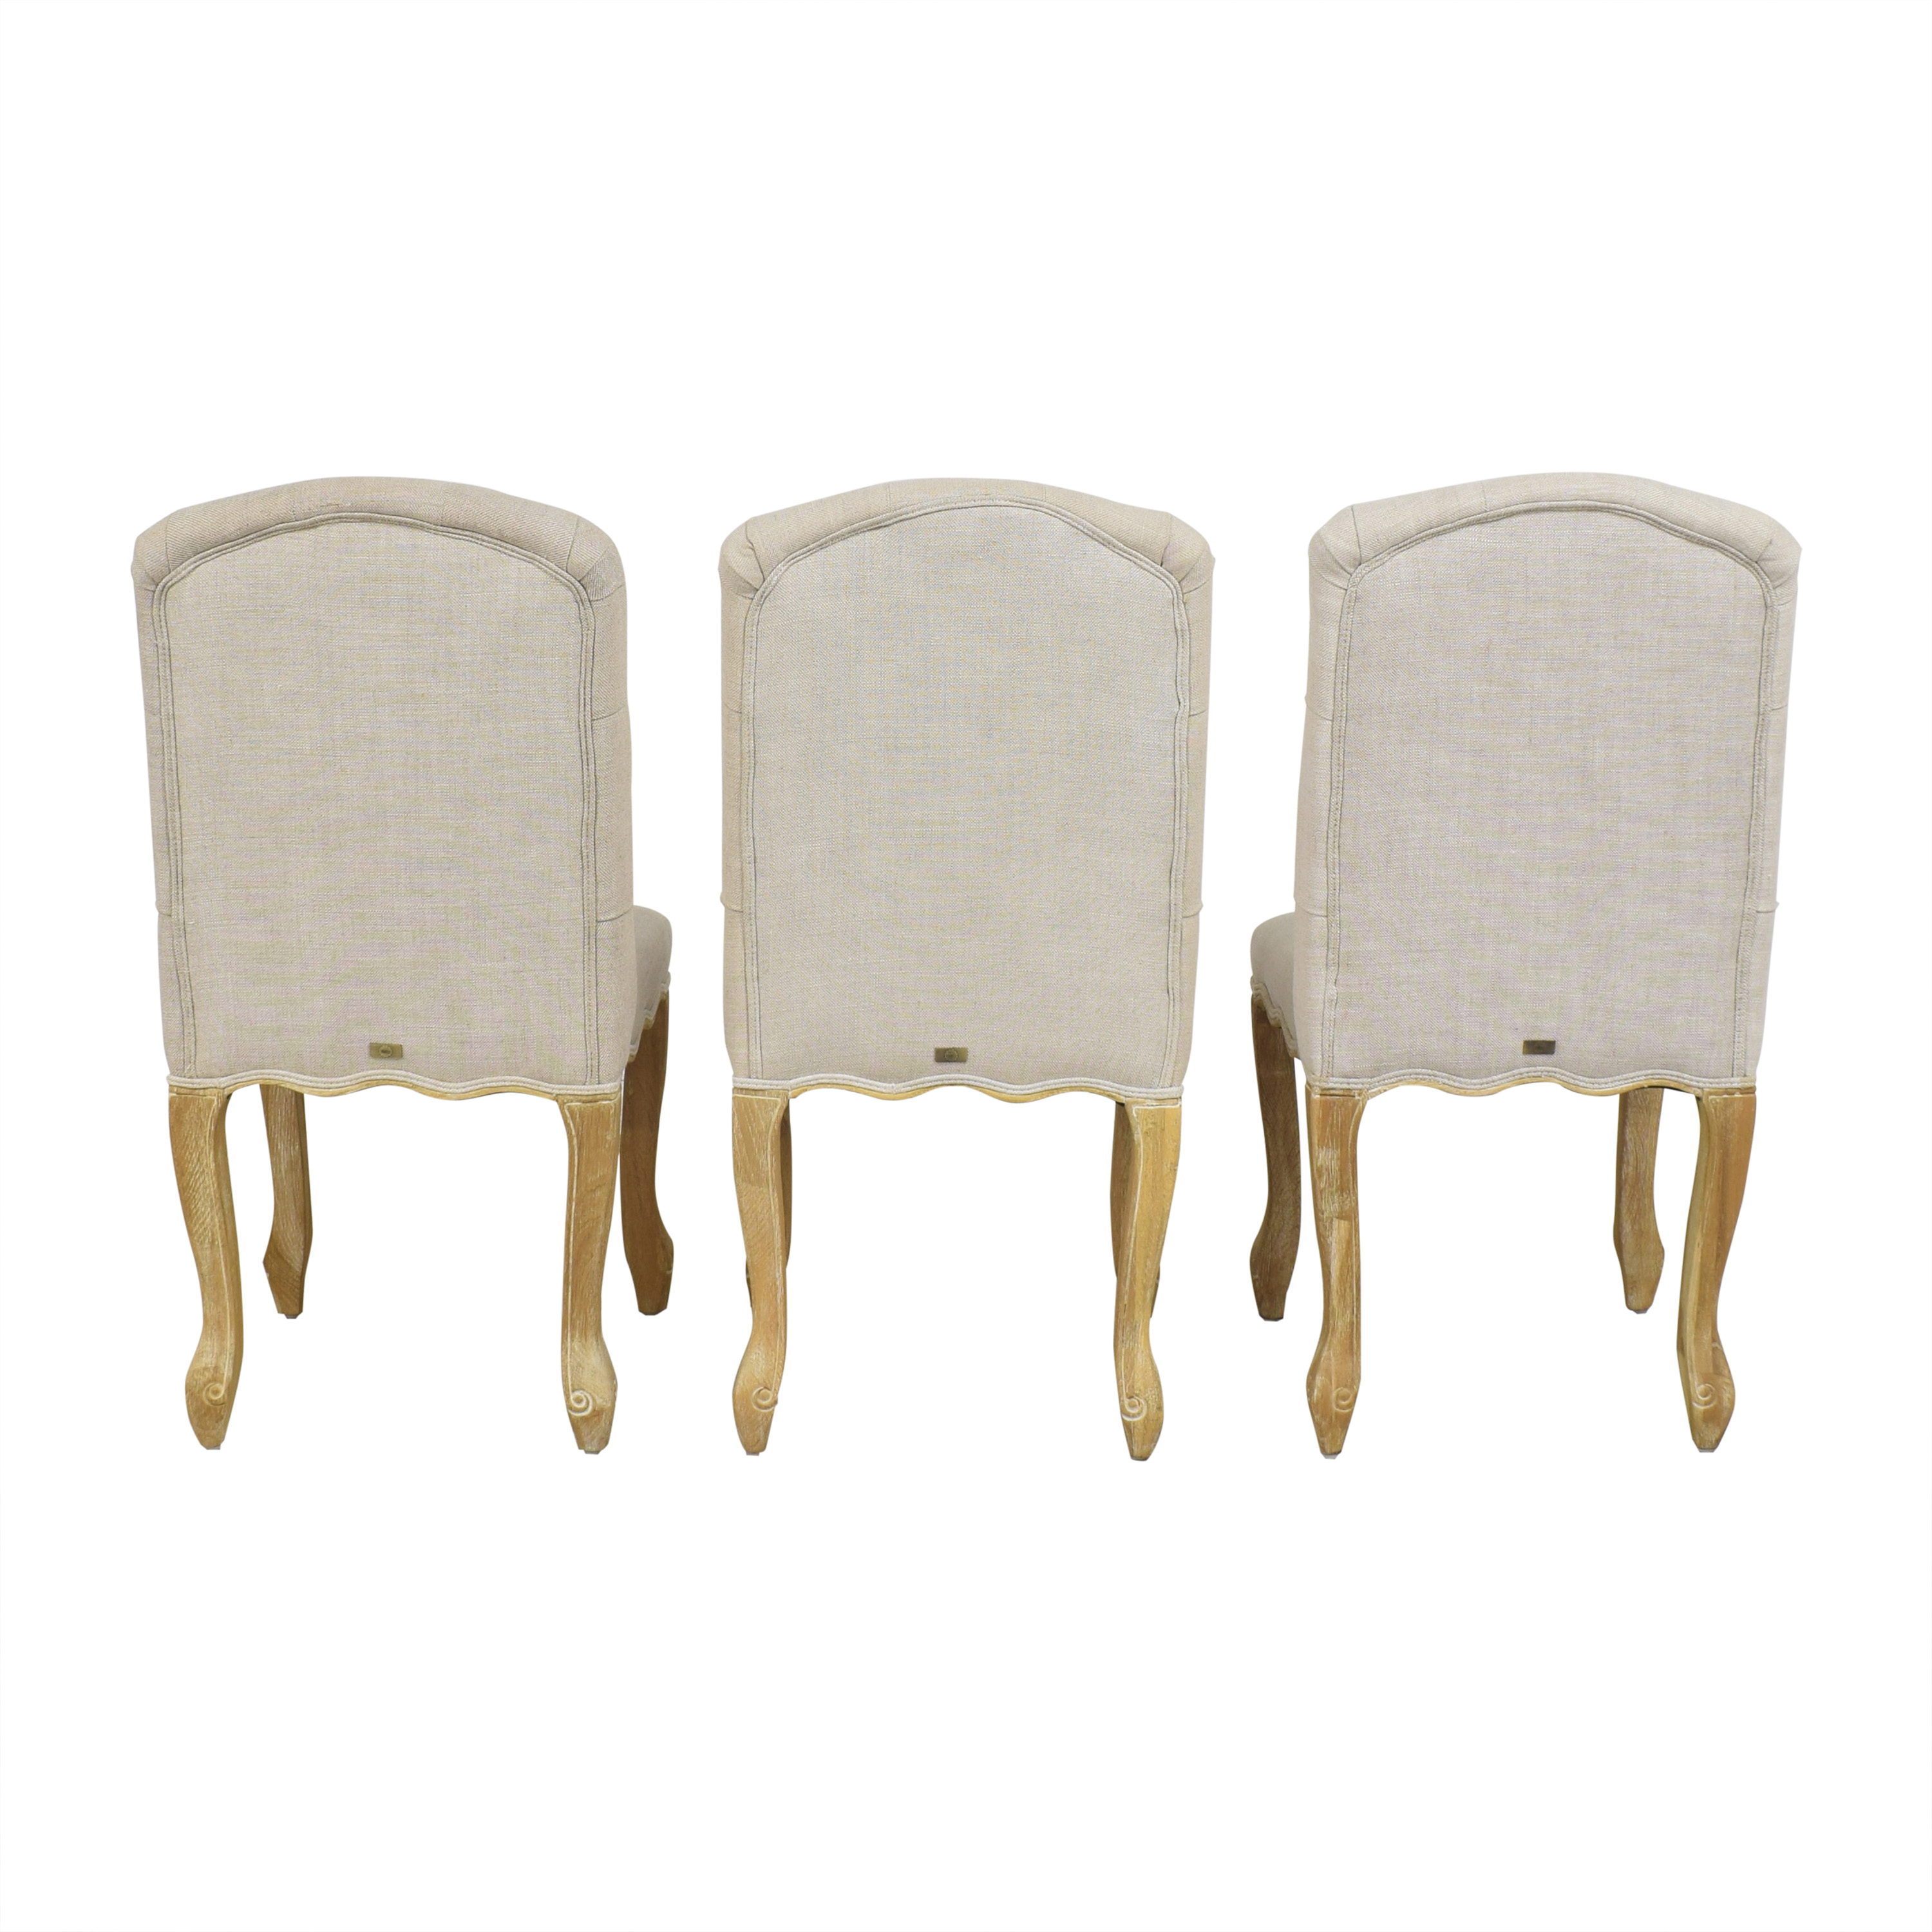 Zuo Modern Zuo Modern Noe Valley Chairs Dining Chairs